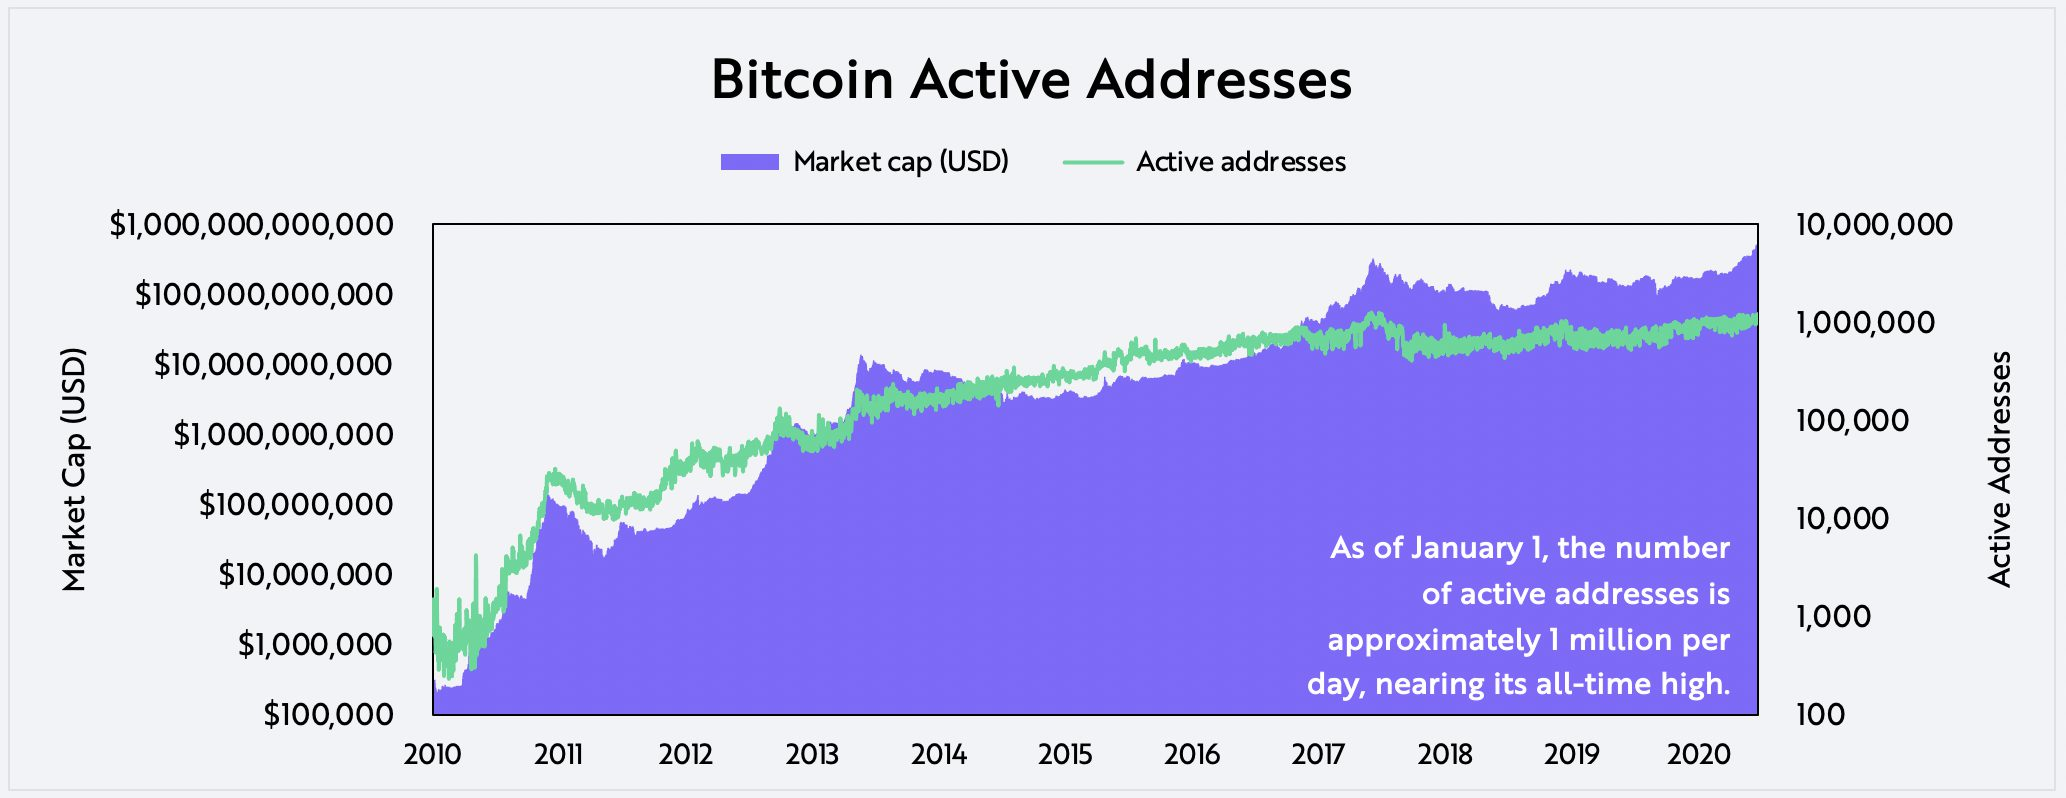 Evaluating Bitcoin Active Addresses on-chain data